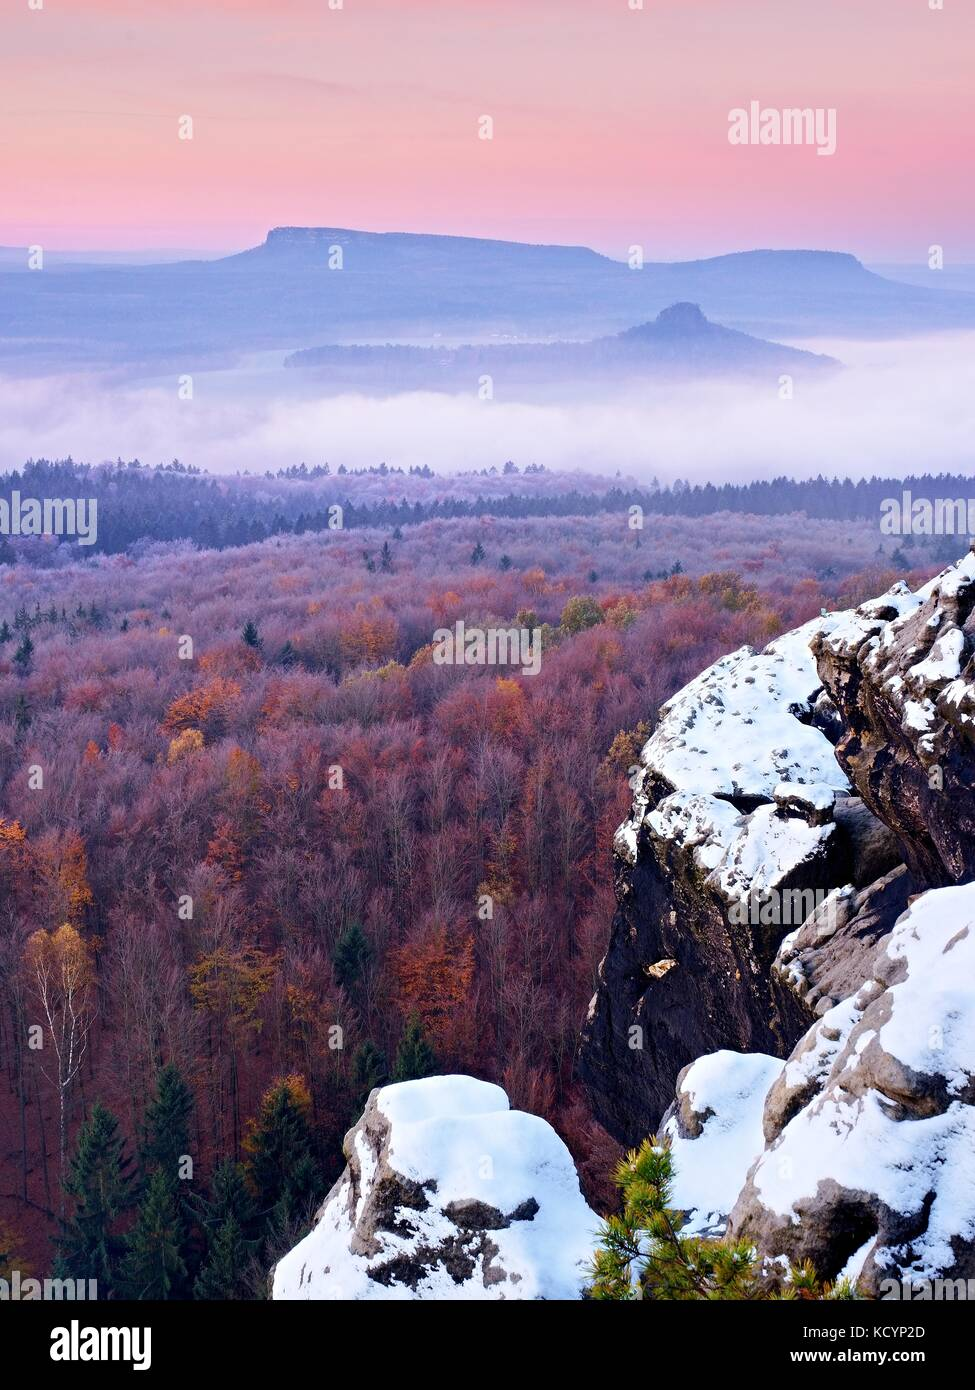 First powder snow cover on sandstone rocks above valley park. Heavy mist in valley bellow view point. Chilly autumnal - Stock Image